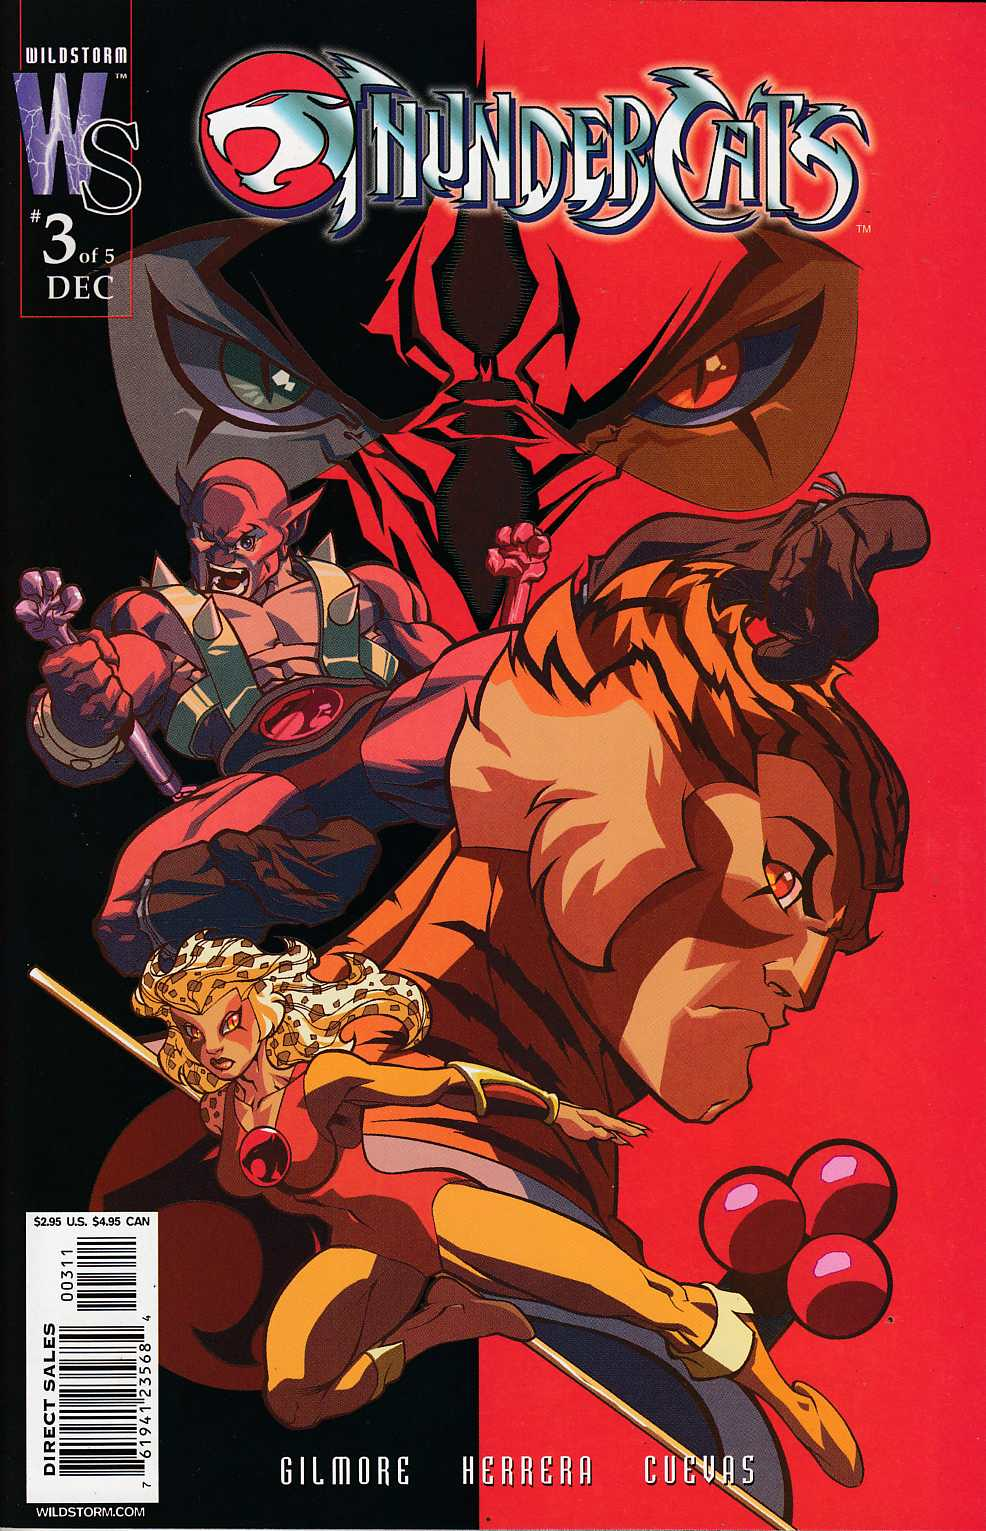 Thundercats #3 Cover A Near Mint (9.4) [DC Comic] THUMBNAIL